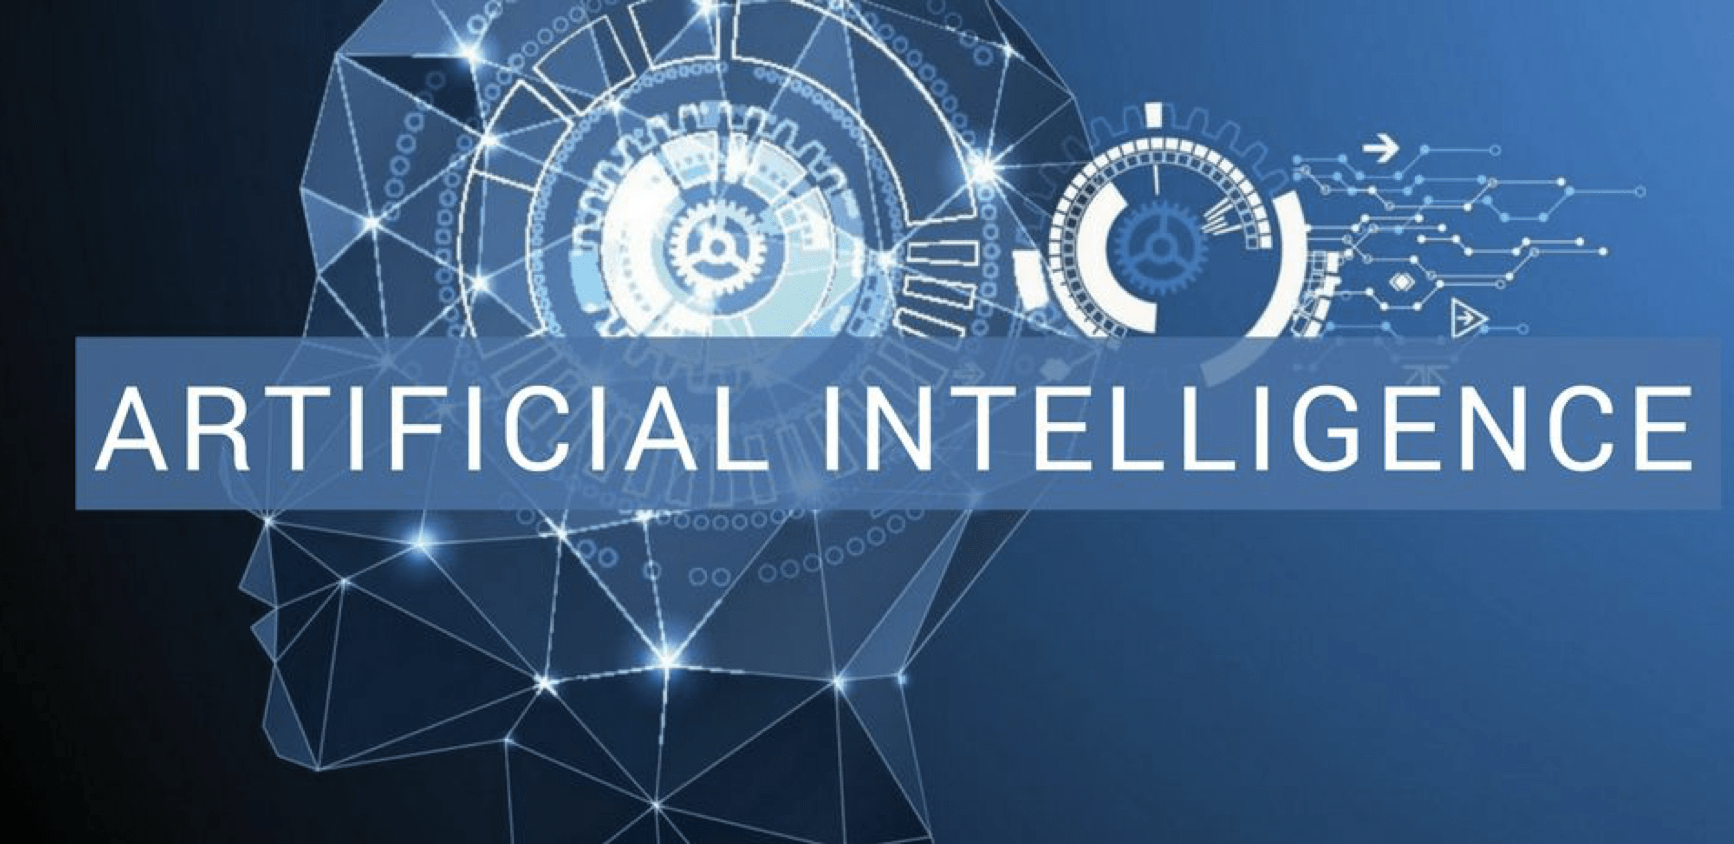 AI, artificial intelligence, small businesses, Kenneth Mbonu, The Flatbush Junction Business Improvement District